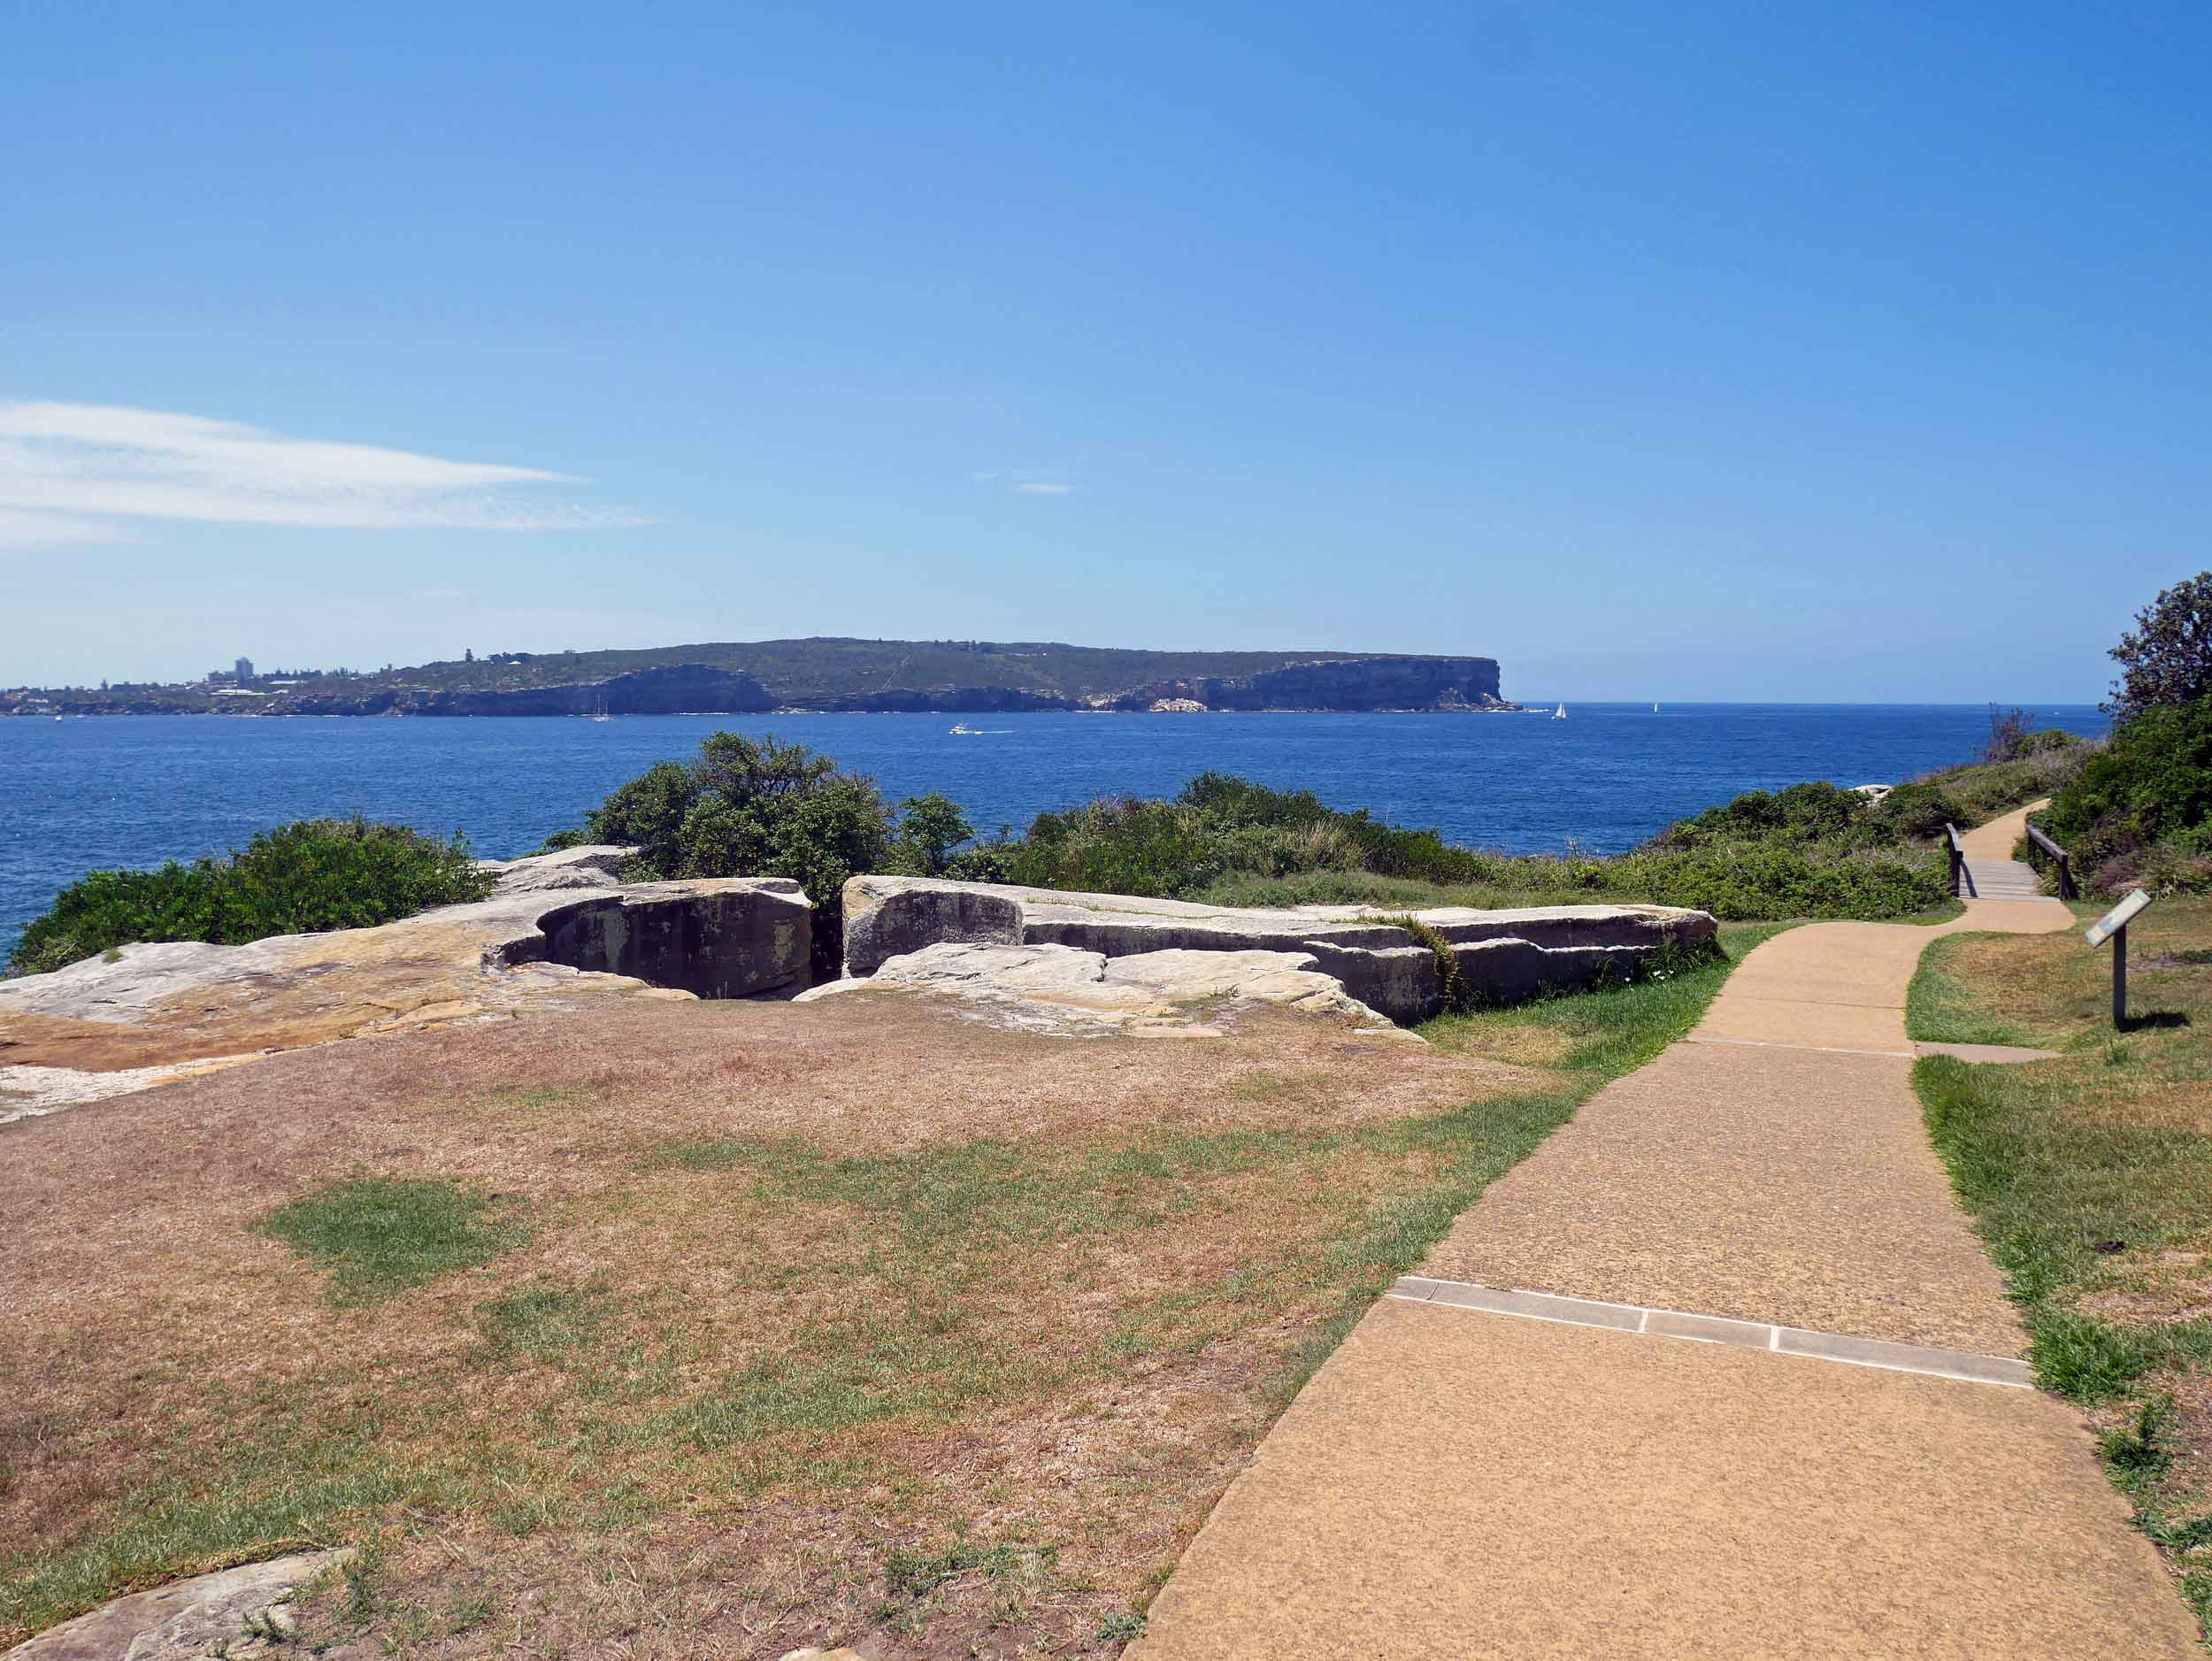 A quick, easy walk at Watsons Bay reveals the mouth of the Harbour (Feb 4).